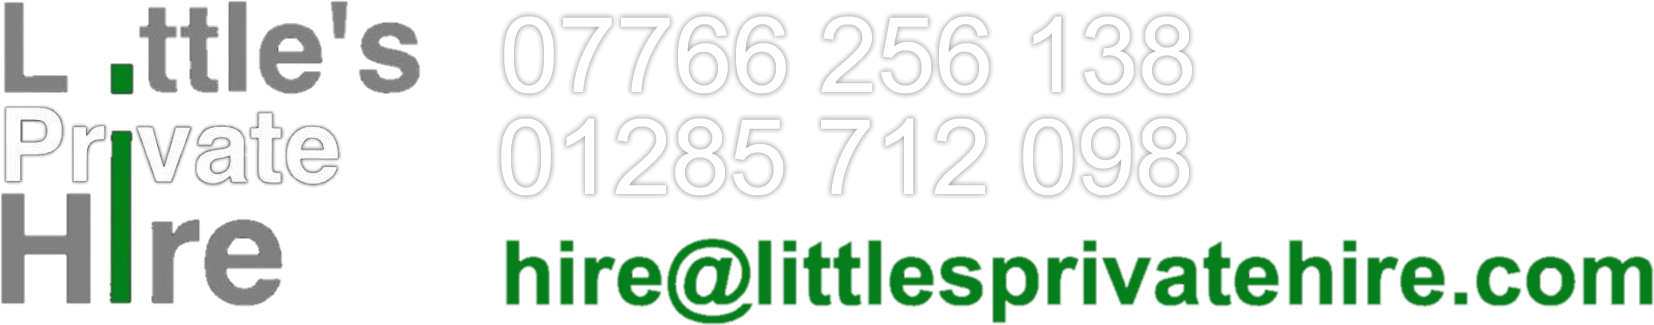 Little's Private Hire